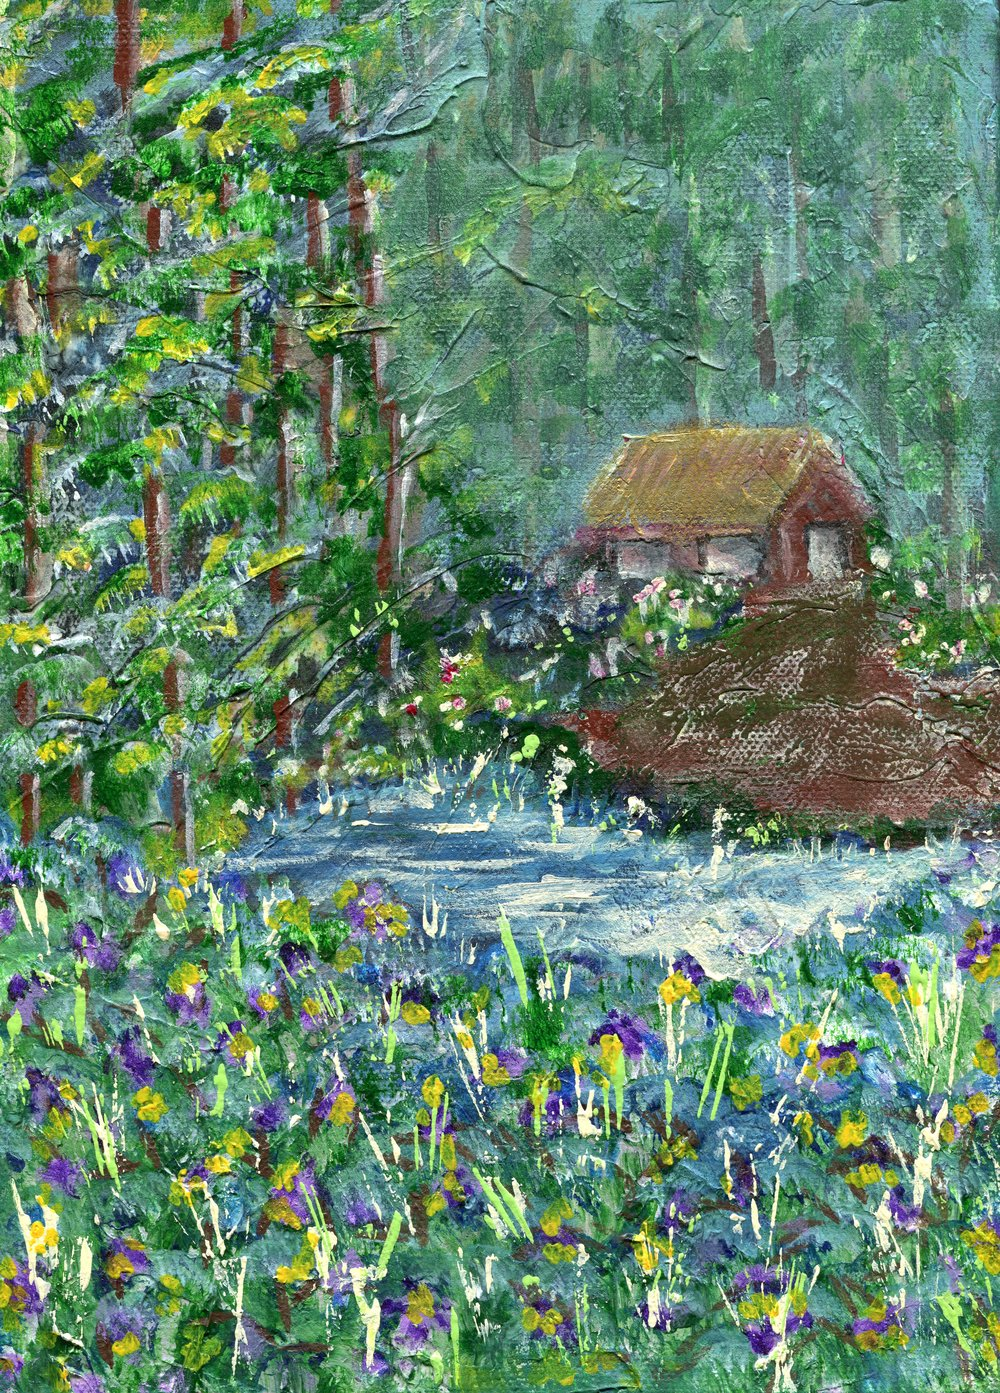 70b  Patricia McCann  Irises in the forest  acrylic on canvas